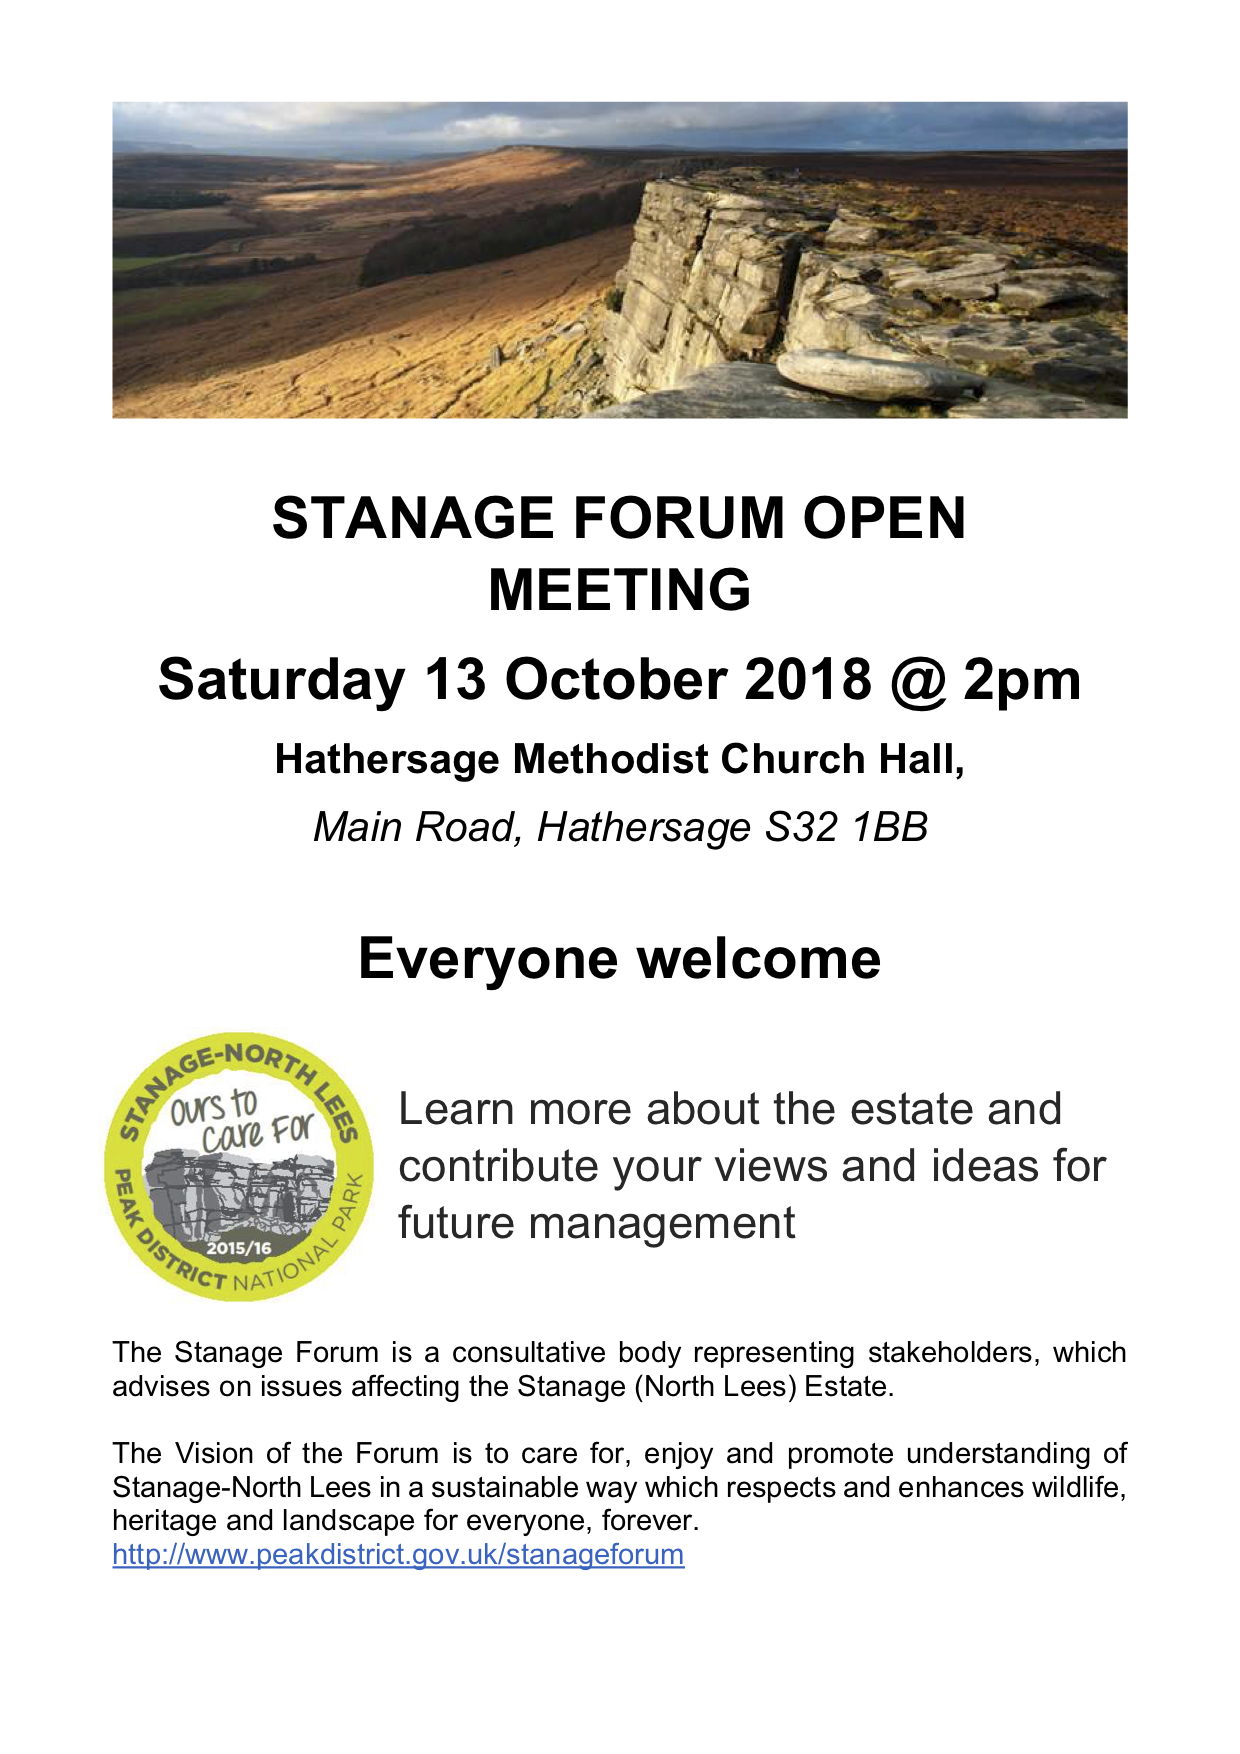 POSTER FOR STANAGE FORUM OPEN MEETING OCTOBER 2018